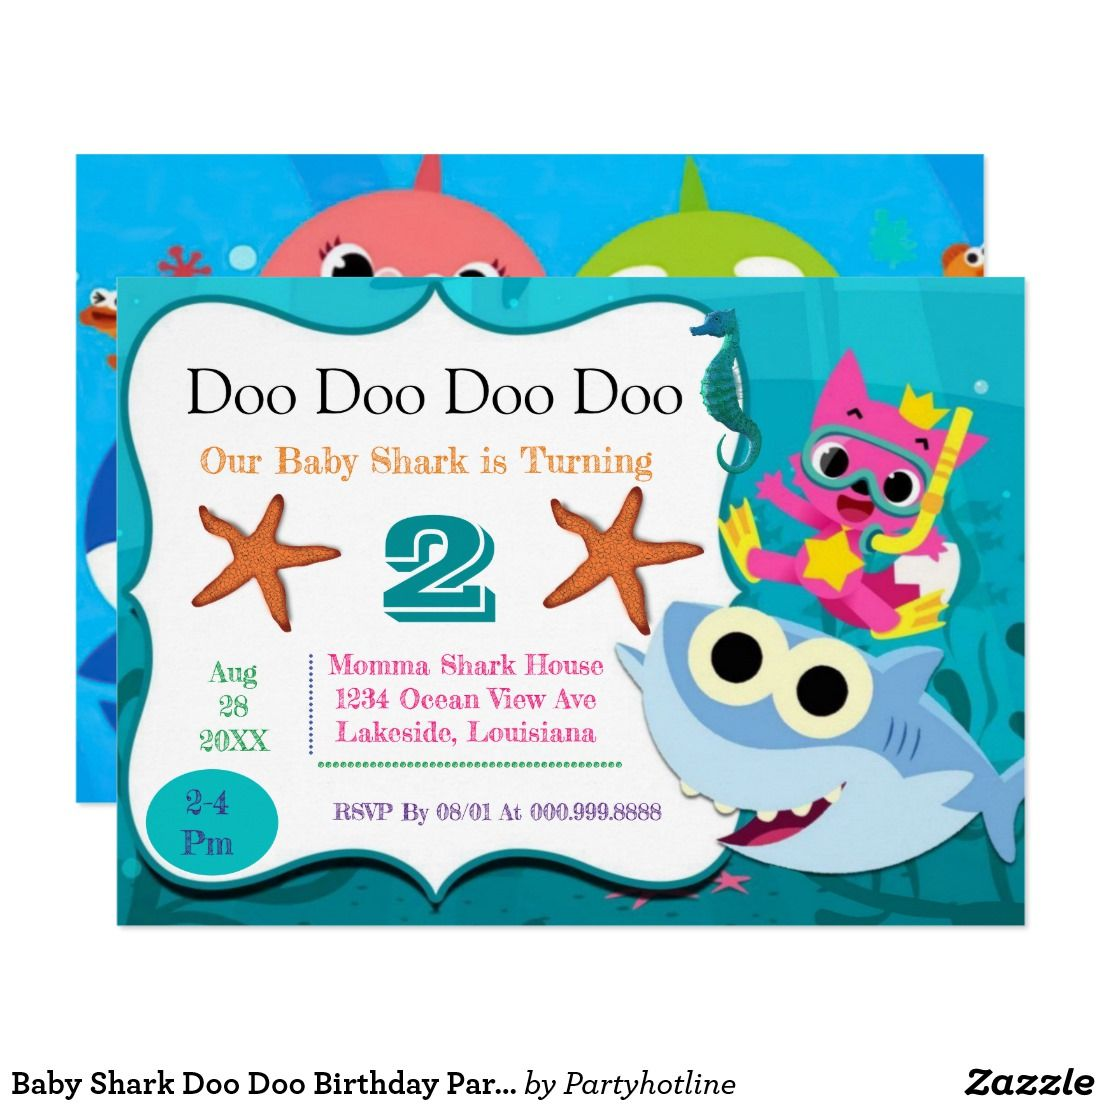 Baby Shark Invitations Baby Shark Girl Party Decorations Baby Shark Doo Doo Birthday Party Song Invites